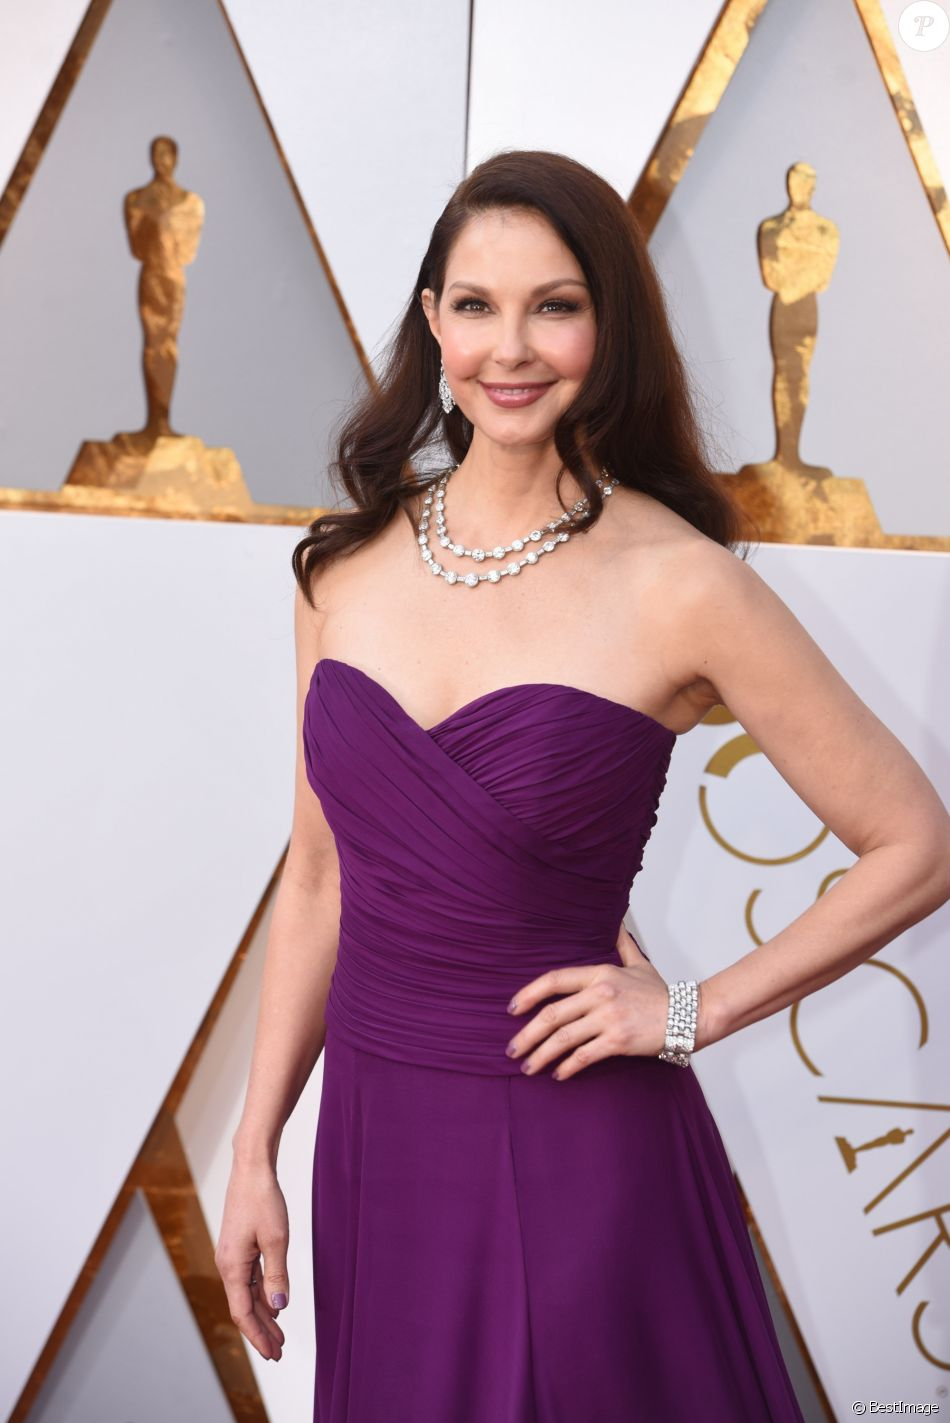 Ashley Judd - Arrivées - 90ème cérémonie des Oscars 2018 au théâtre Dolby à Los Angeles, le 4 mars 2018. © Kevin Sullivan via Zuma Press/Bestimage